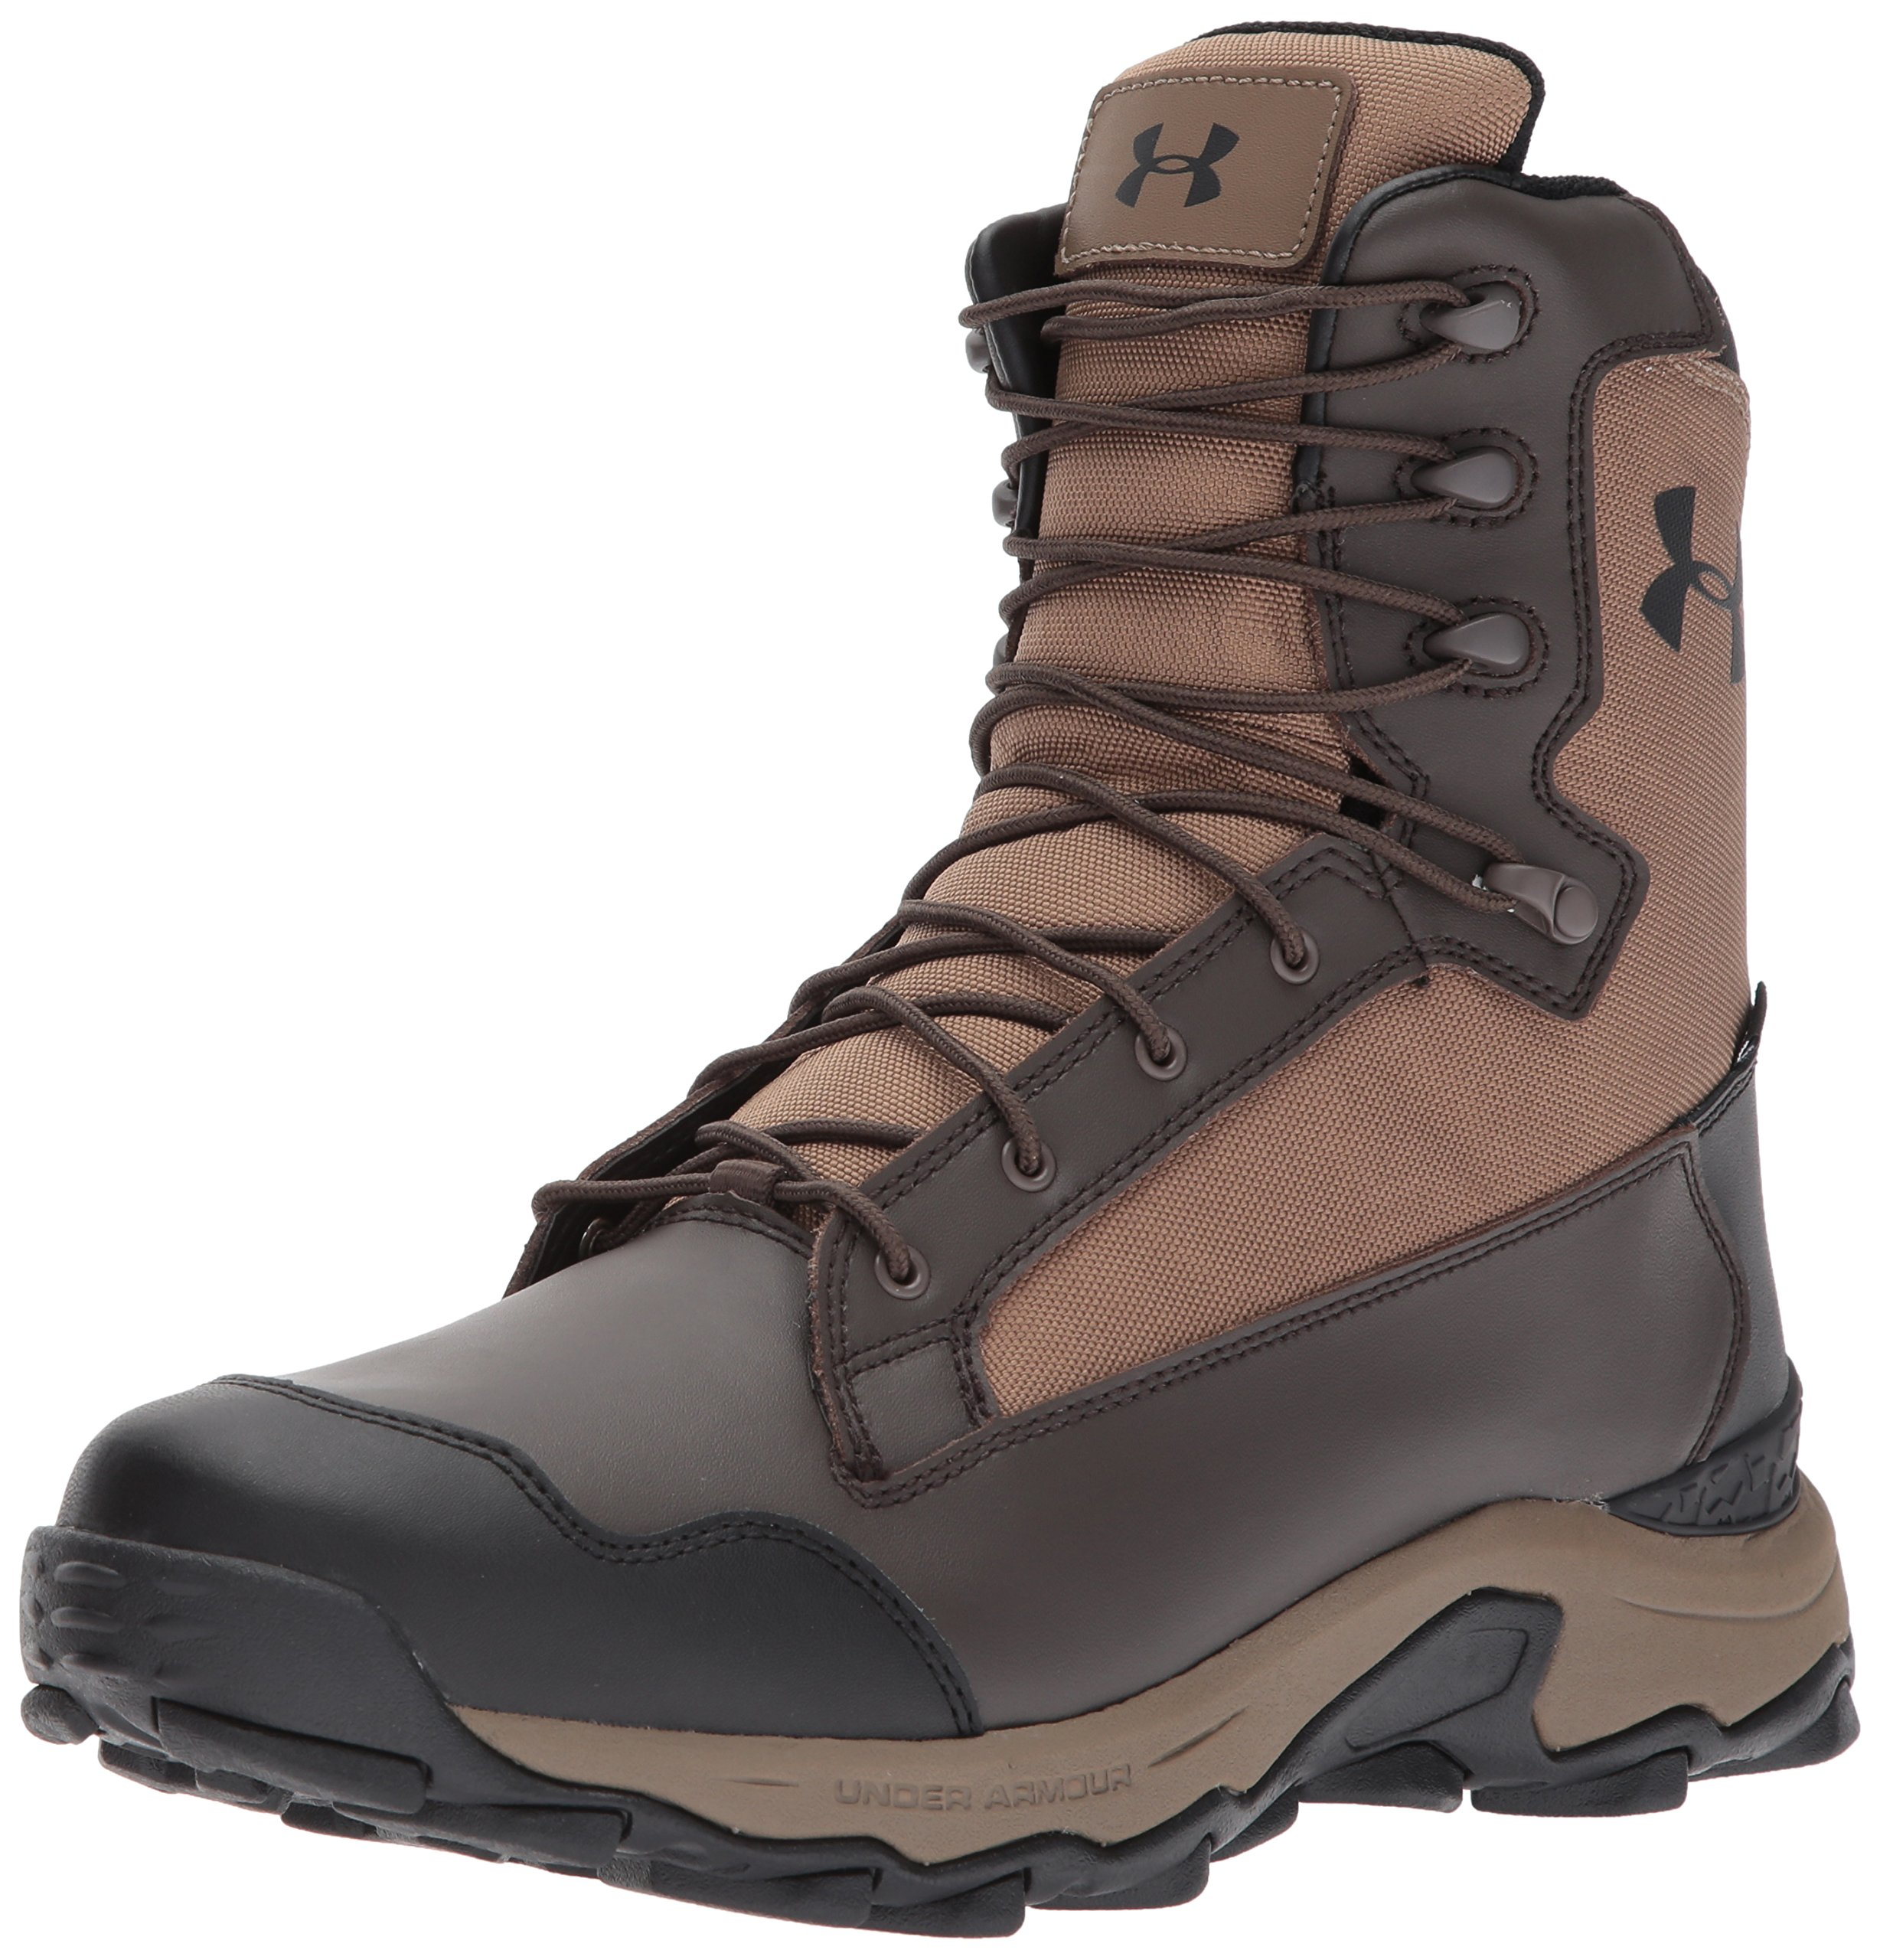 Under Armour Men's Tanger Waterproof-400G Ankle Boot, Uniform (225)/Maverick Brown, 14